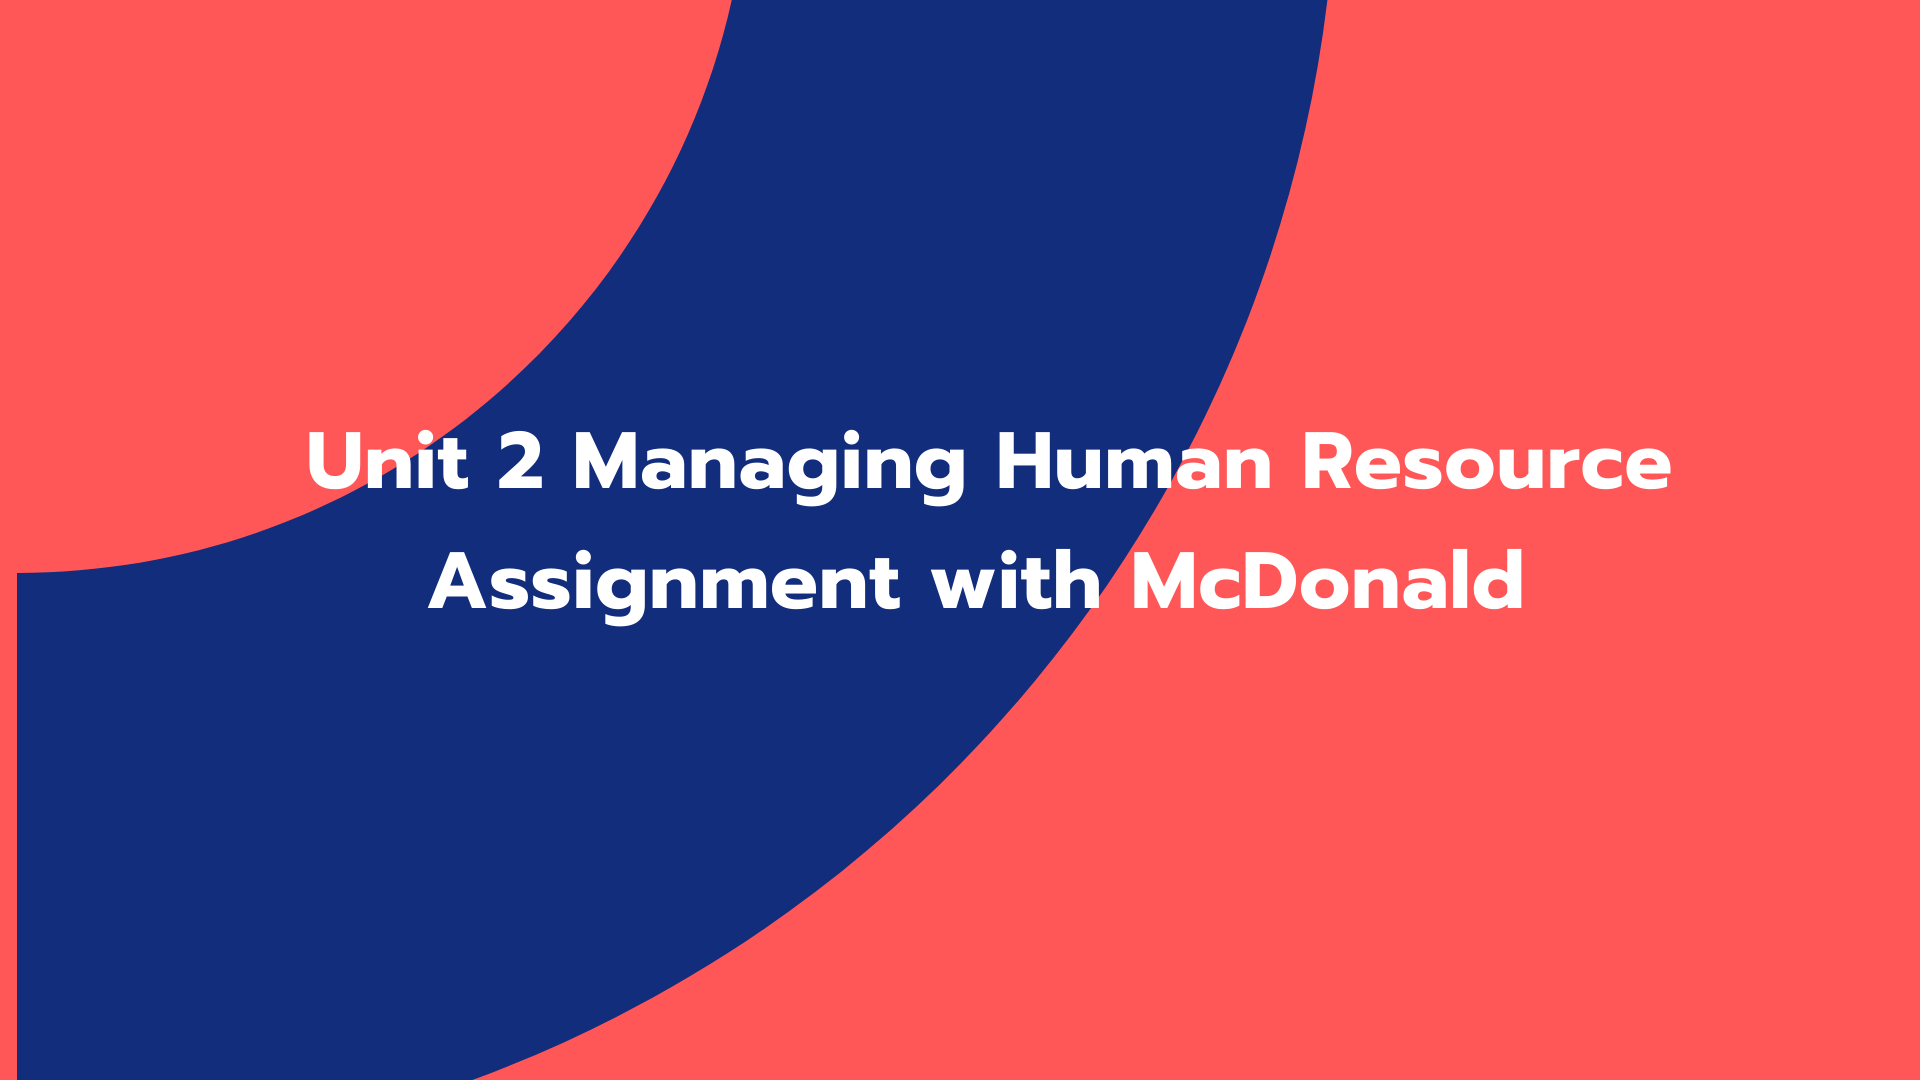 Unit 2 Managing Human Resource Assignment with McDonald